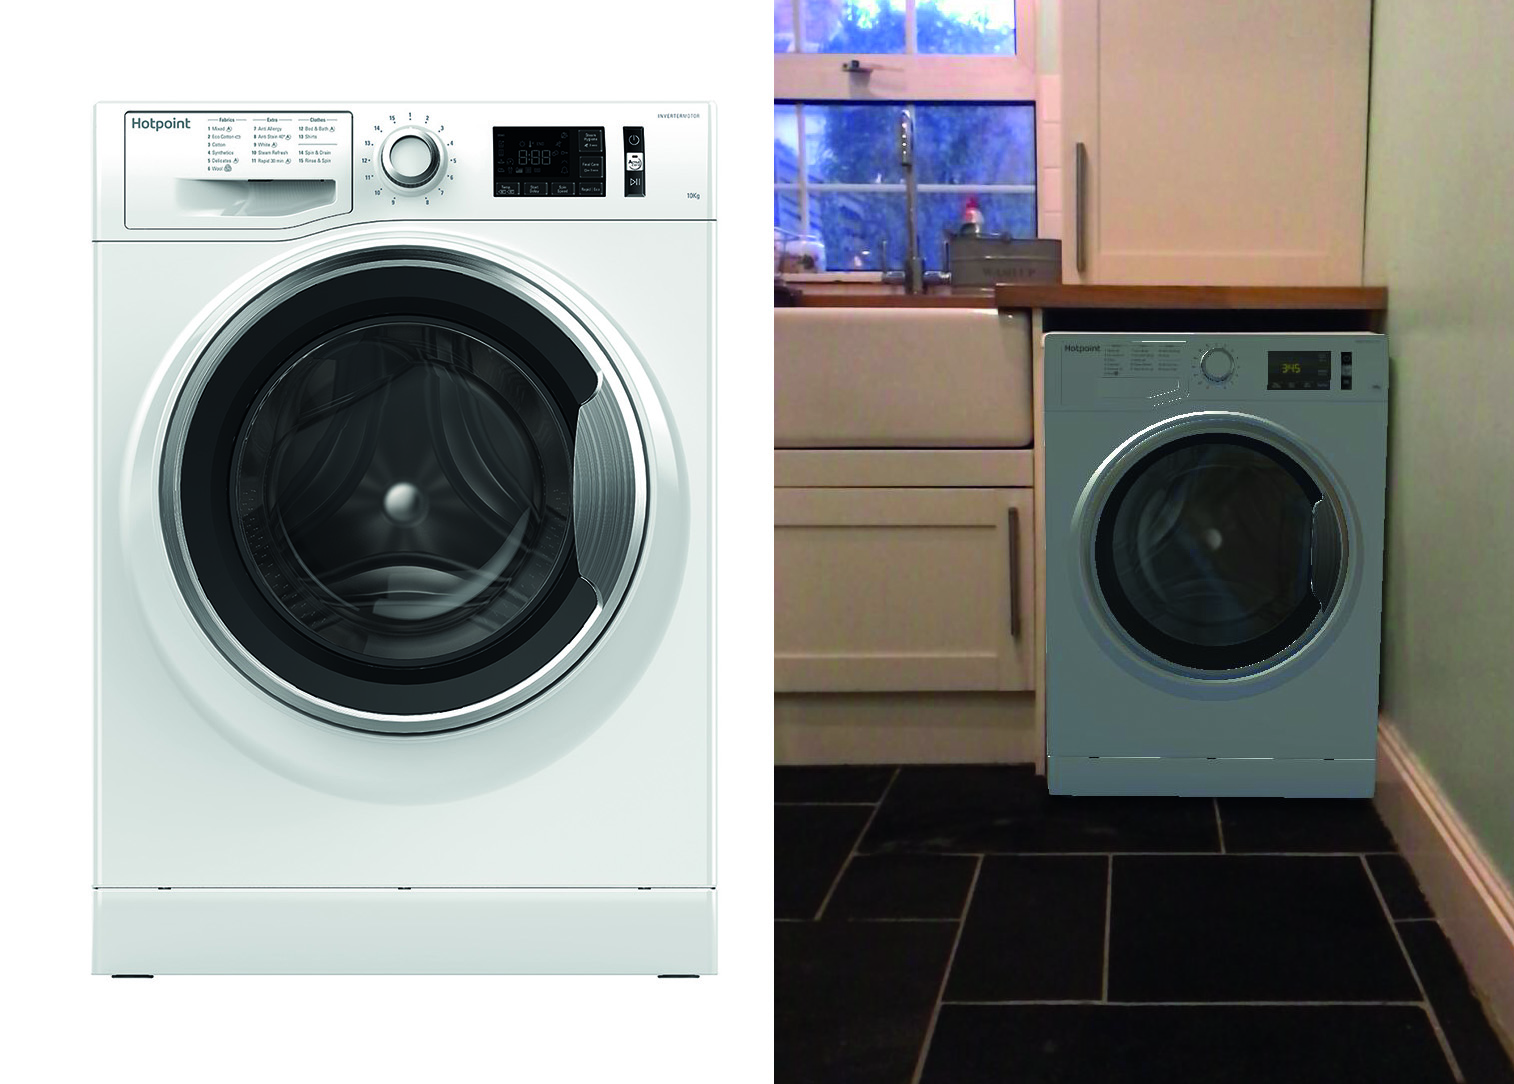 Hotpoint Appliances Available With Augmented Reality App Ert